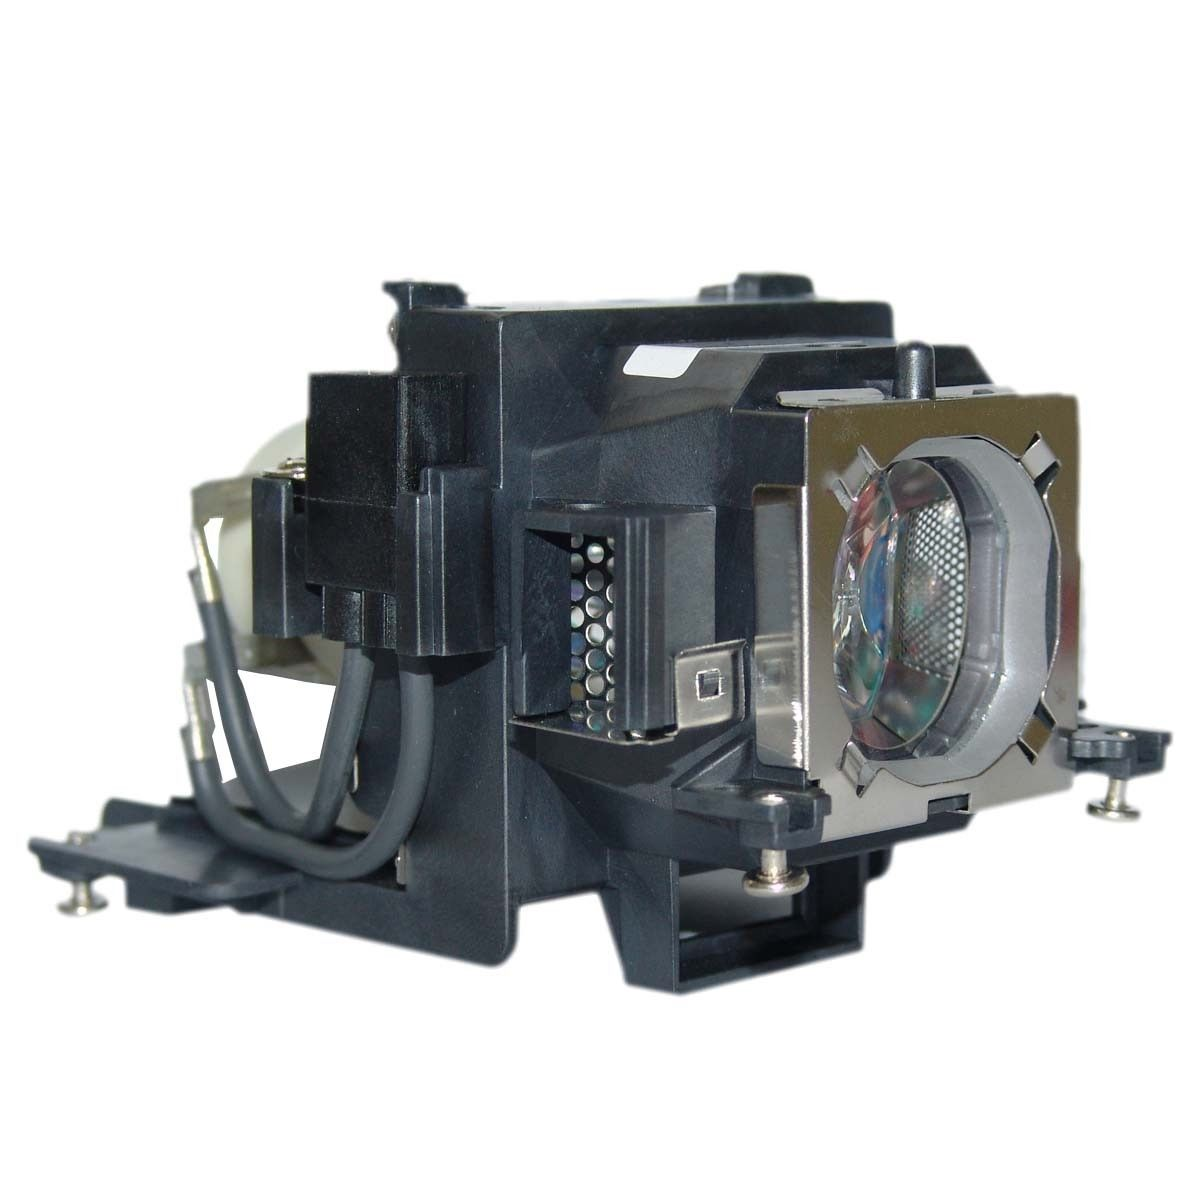 ET-LAV100 For Panasonic PT-VX400E PT-VX400EA PT-VW330 PT-VW330U PT-VX400NTE PT-VX410 PT-VX400U PT-VX41 Projector Lamp Bulb pt ae1000 pt ae2000 pt ae3000 projector lamp bulb et lae1000 for panasonic high quality totally new